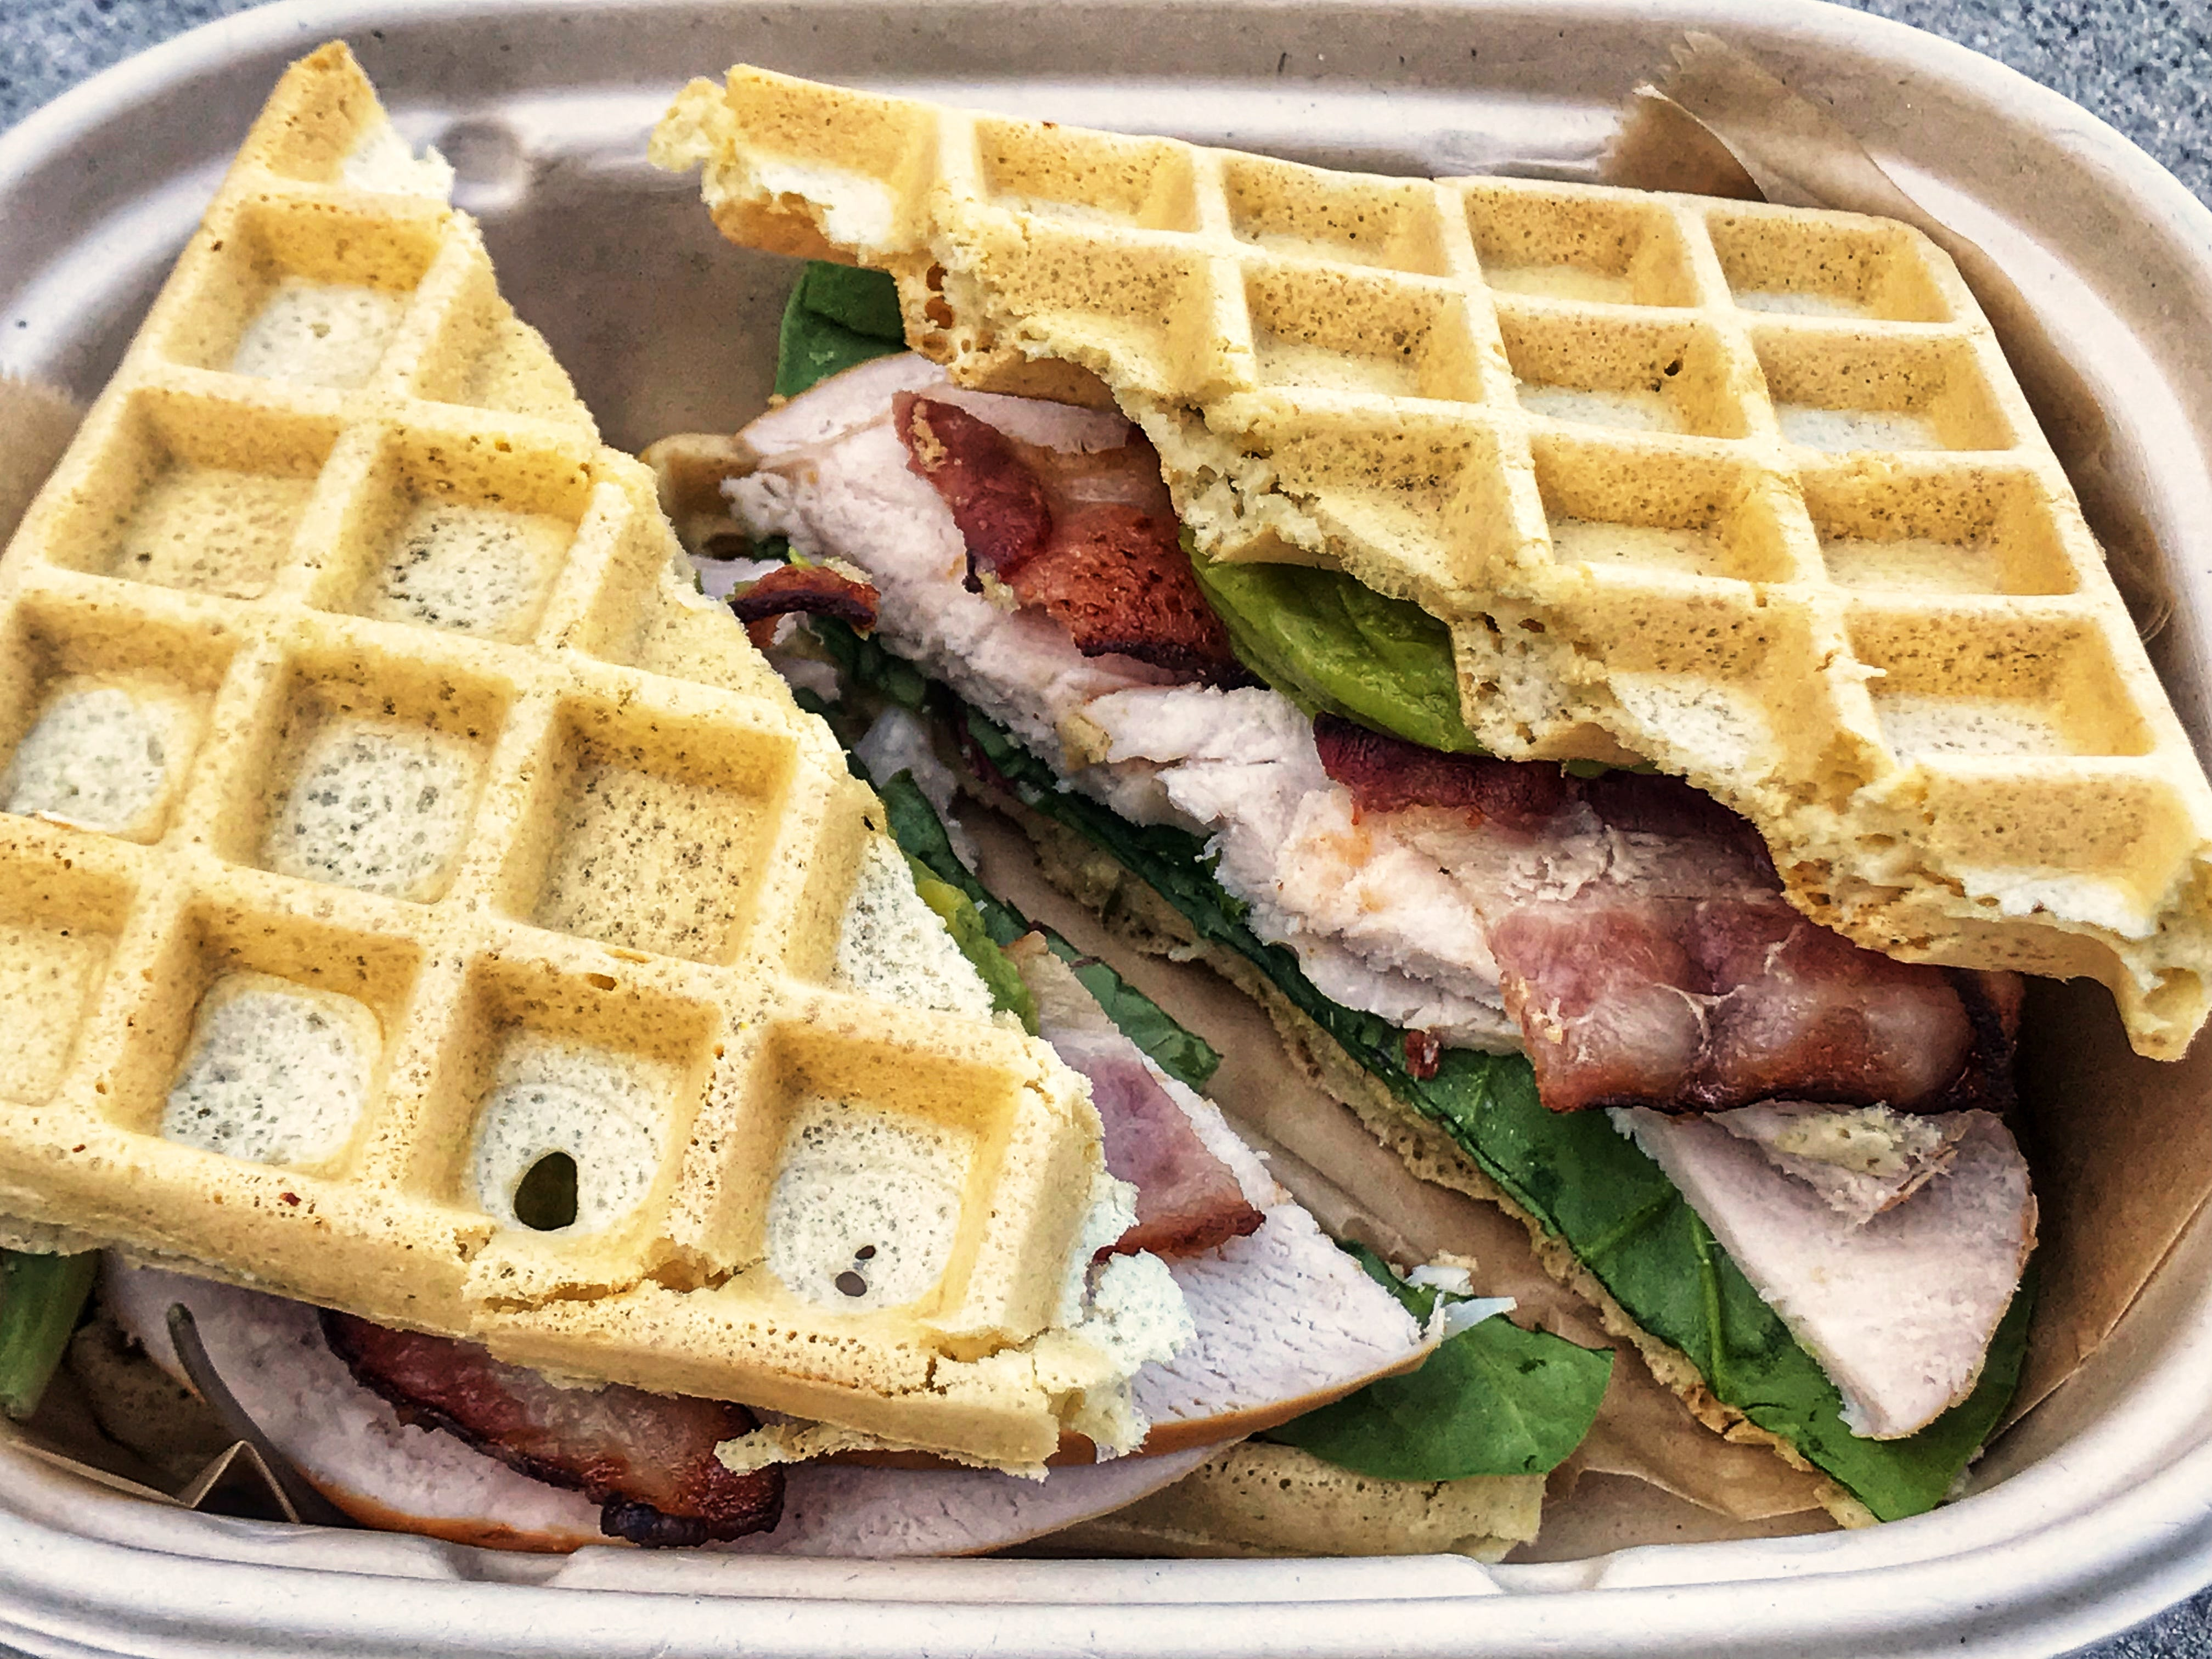 Fittest Kitchen has launched a meal prep service, which includes menu items like the turkey, bacon and avocado sandwich.